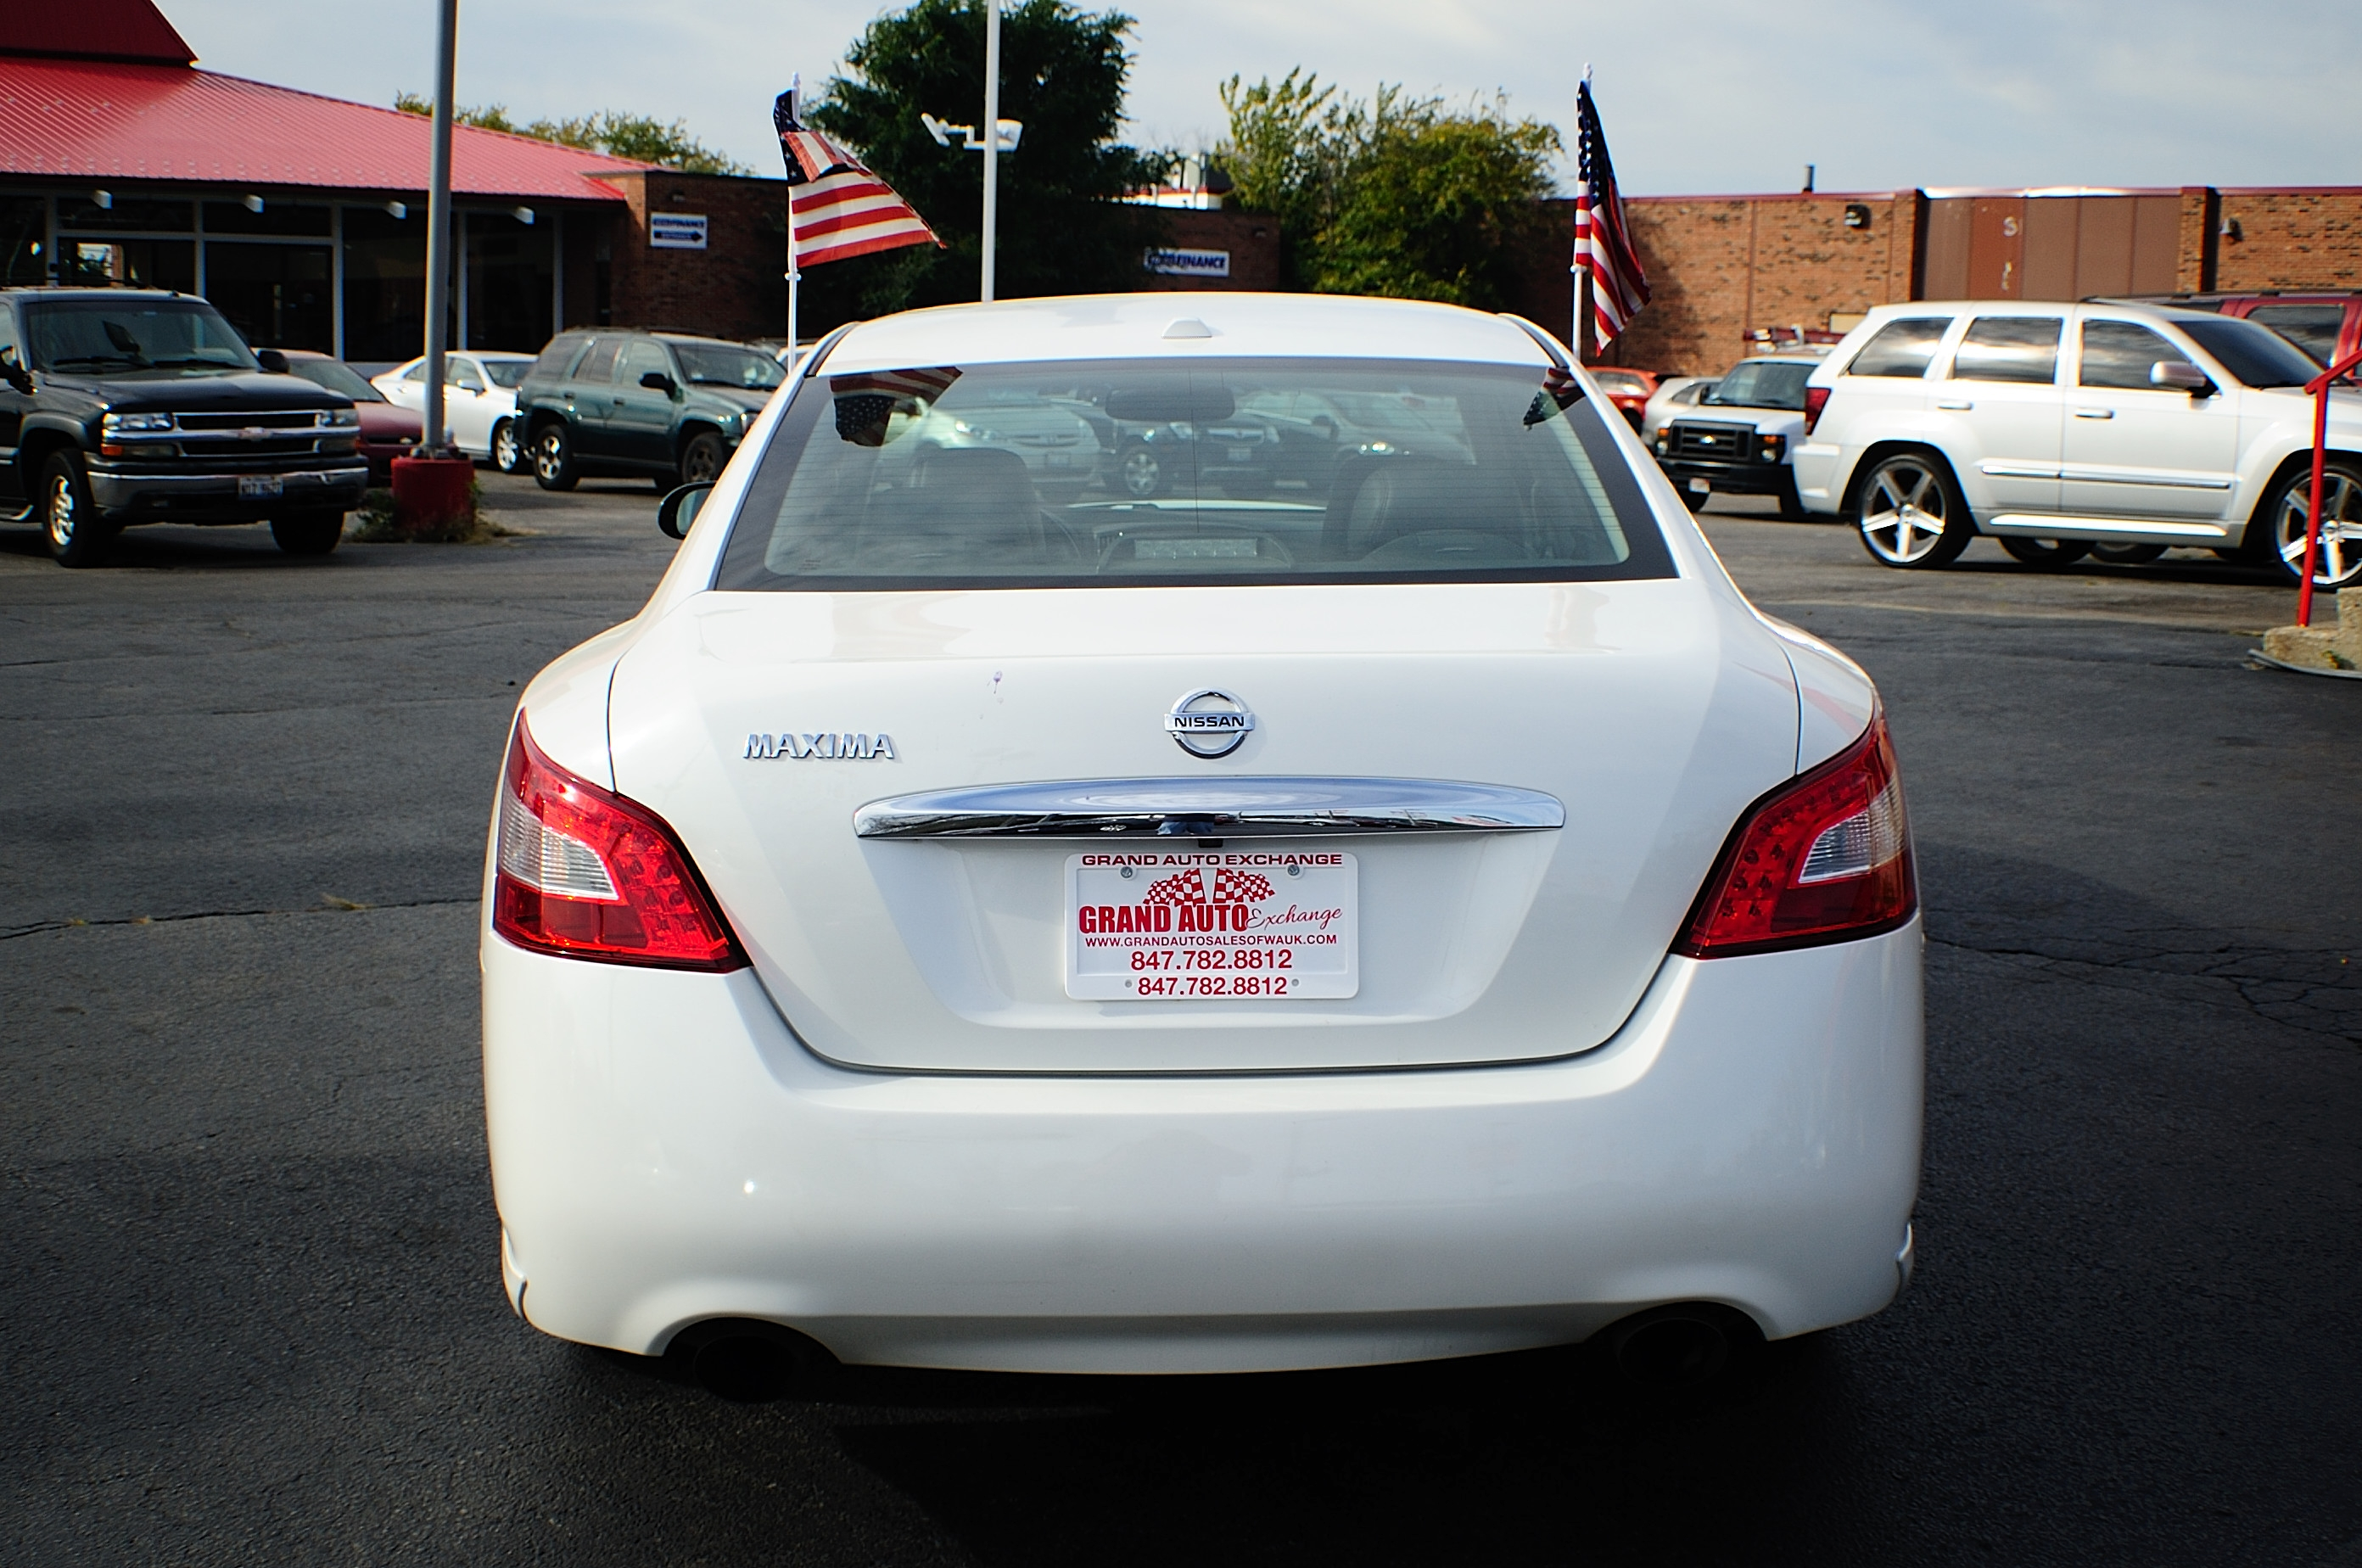 2009 Nissan Maxima White Navigation Sedan Used Car Sale Buffalo Grove Deerfield Fox Lake